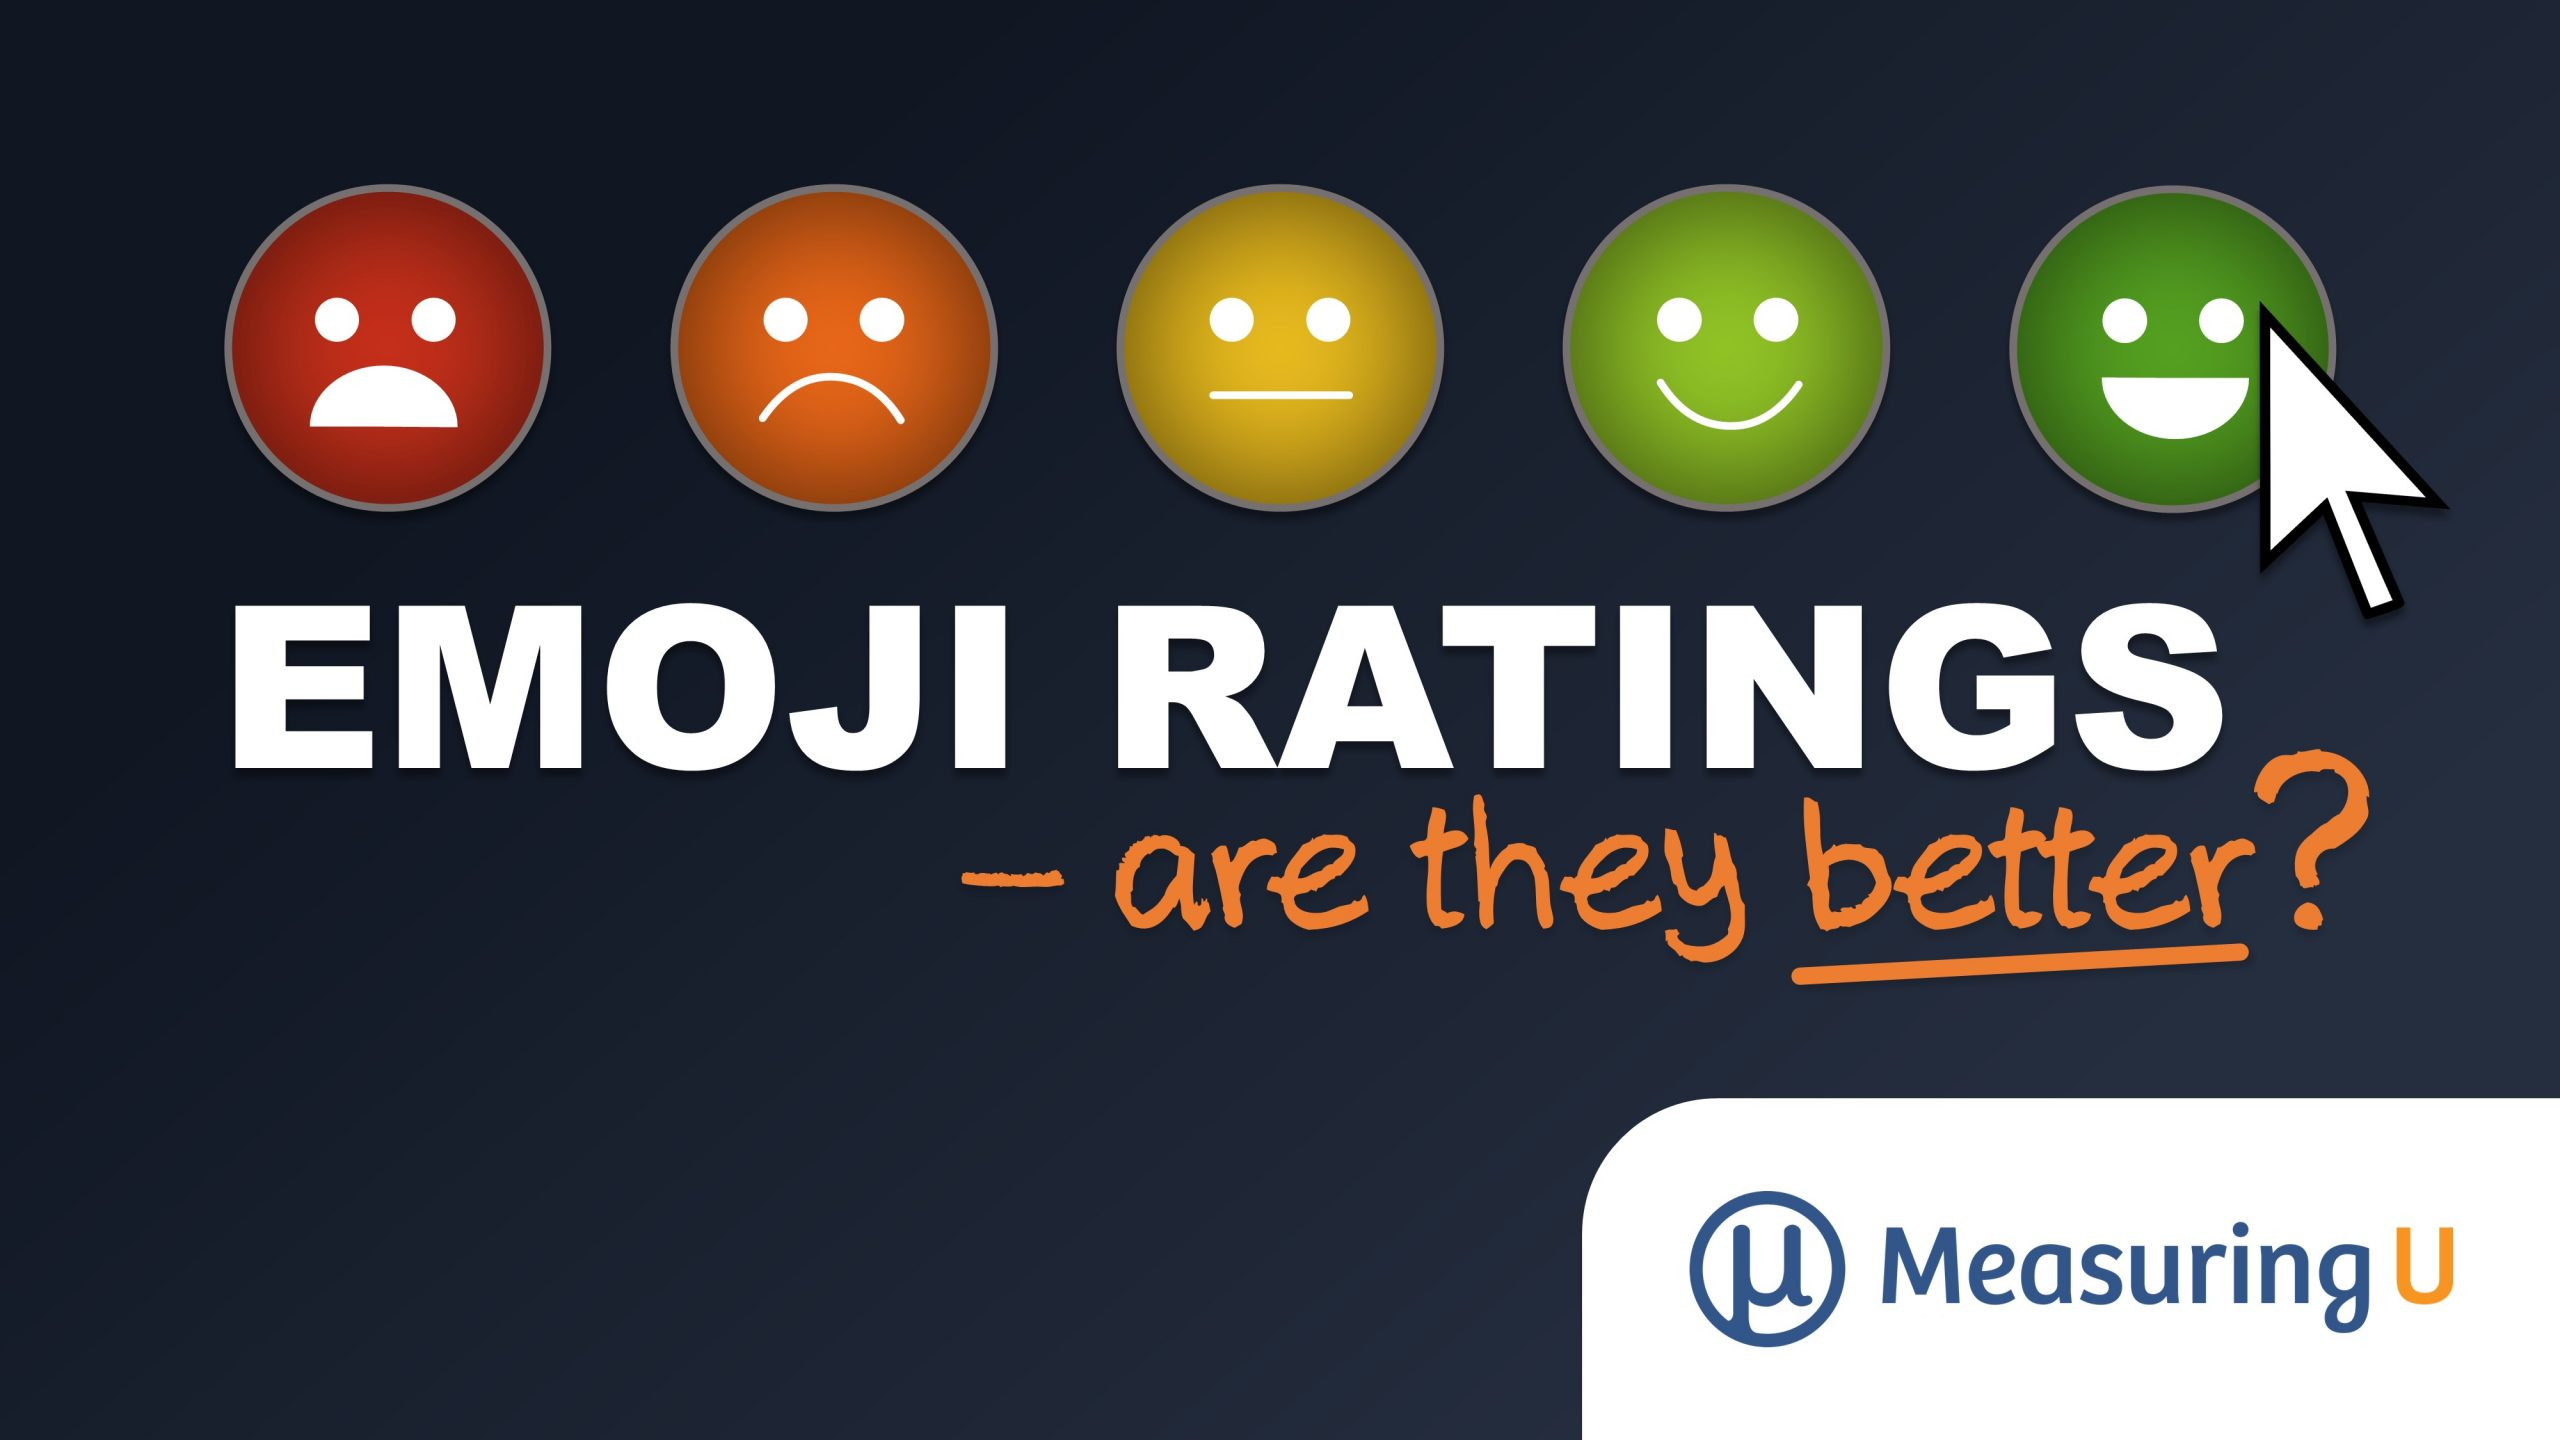 Are Face Emoji Ratings Better than Numbered Scales?